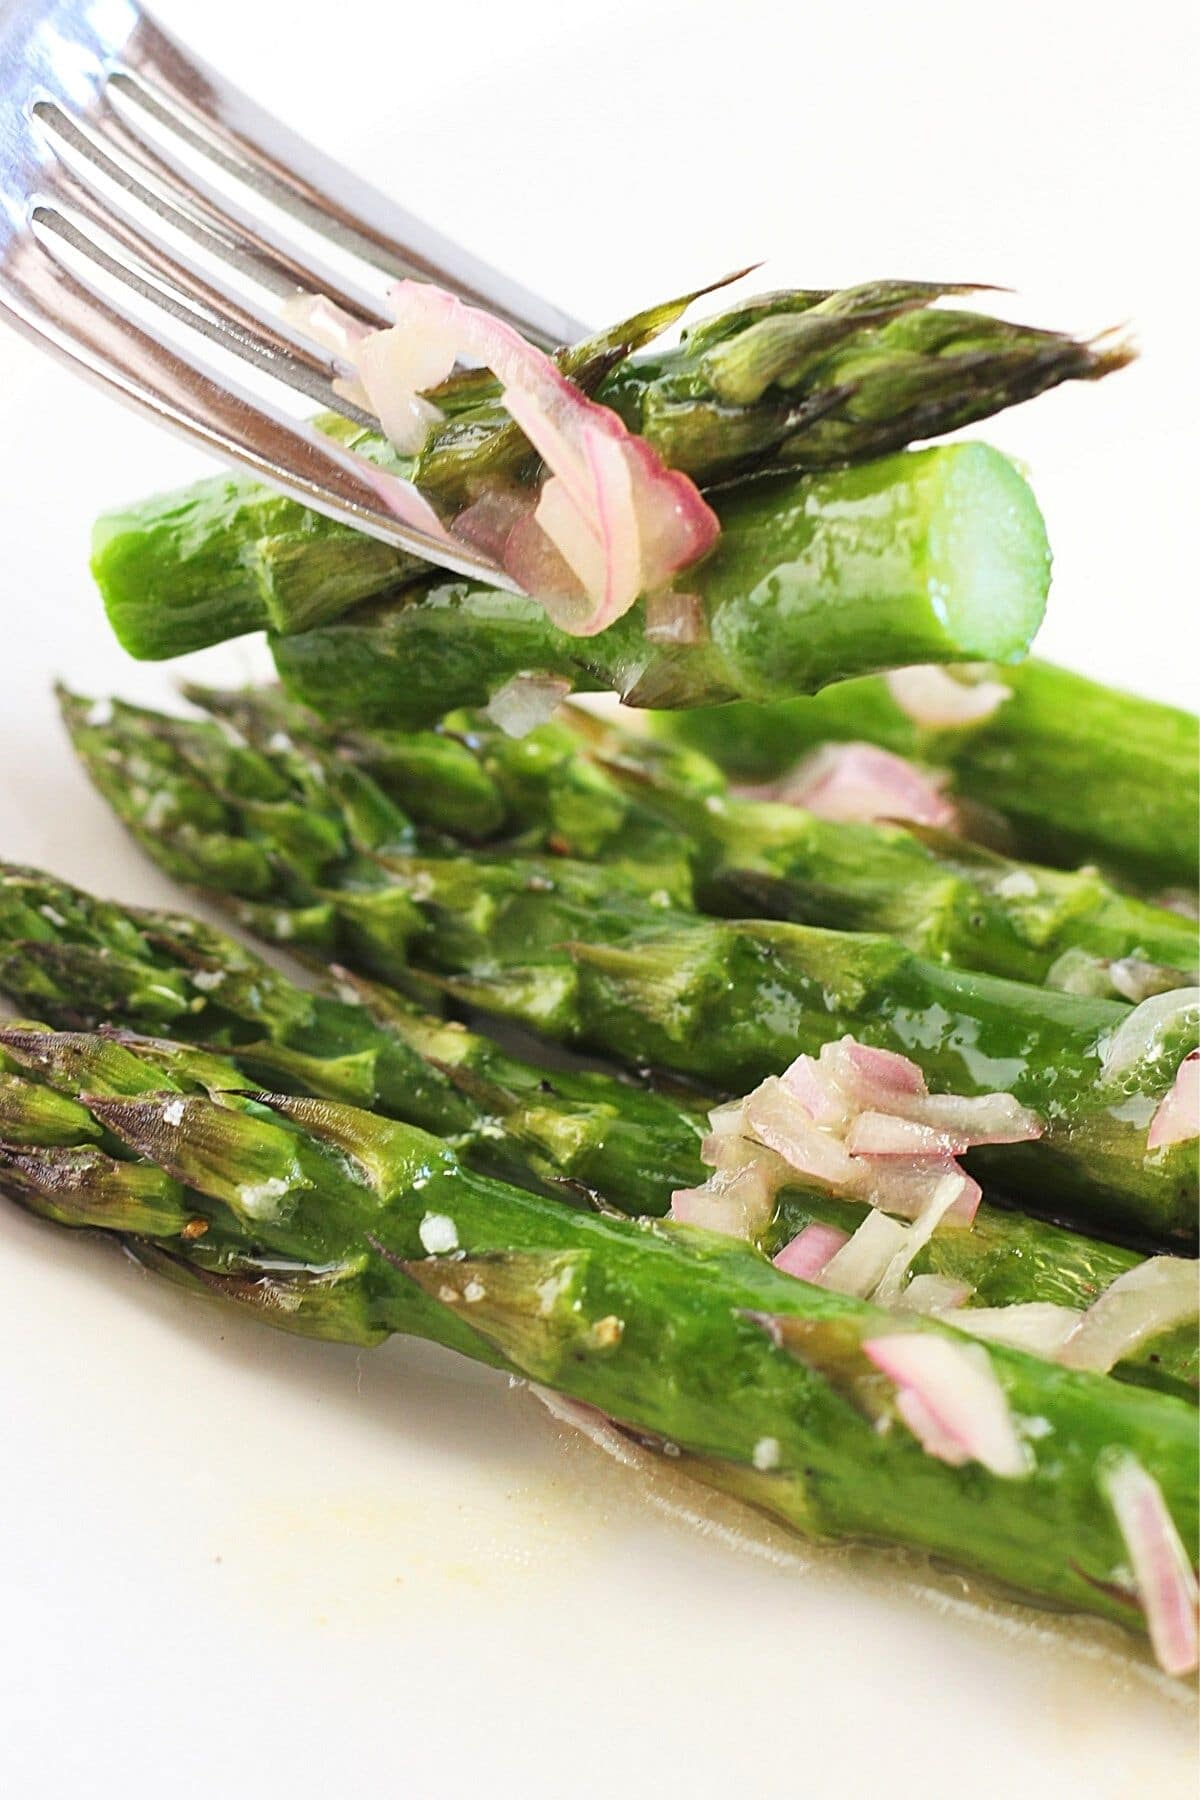 roasted asparagus with shallot vinaigrette on a plate with a forkful of cut asparagus above it